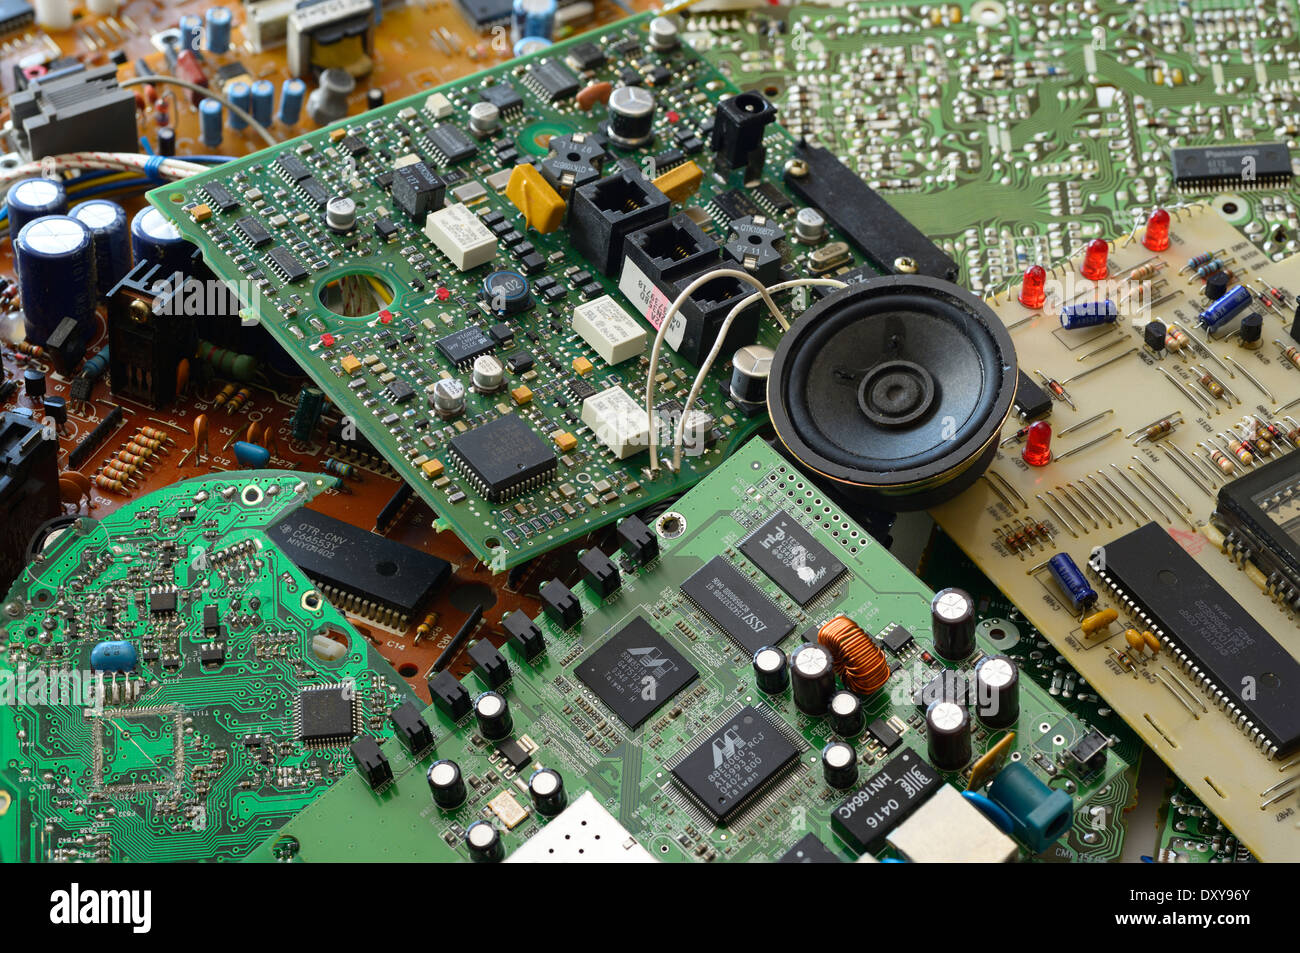 Collection of junk electronic components with microchips and integrated printed circuit boards - Stock Image